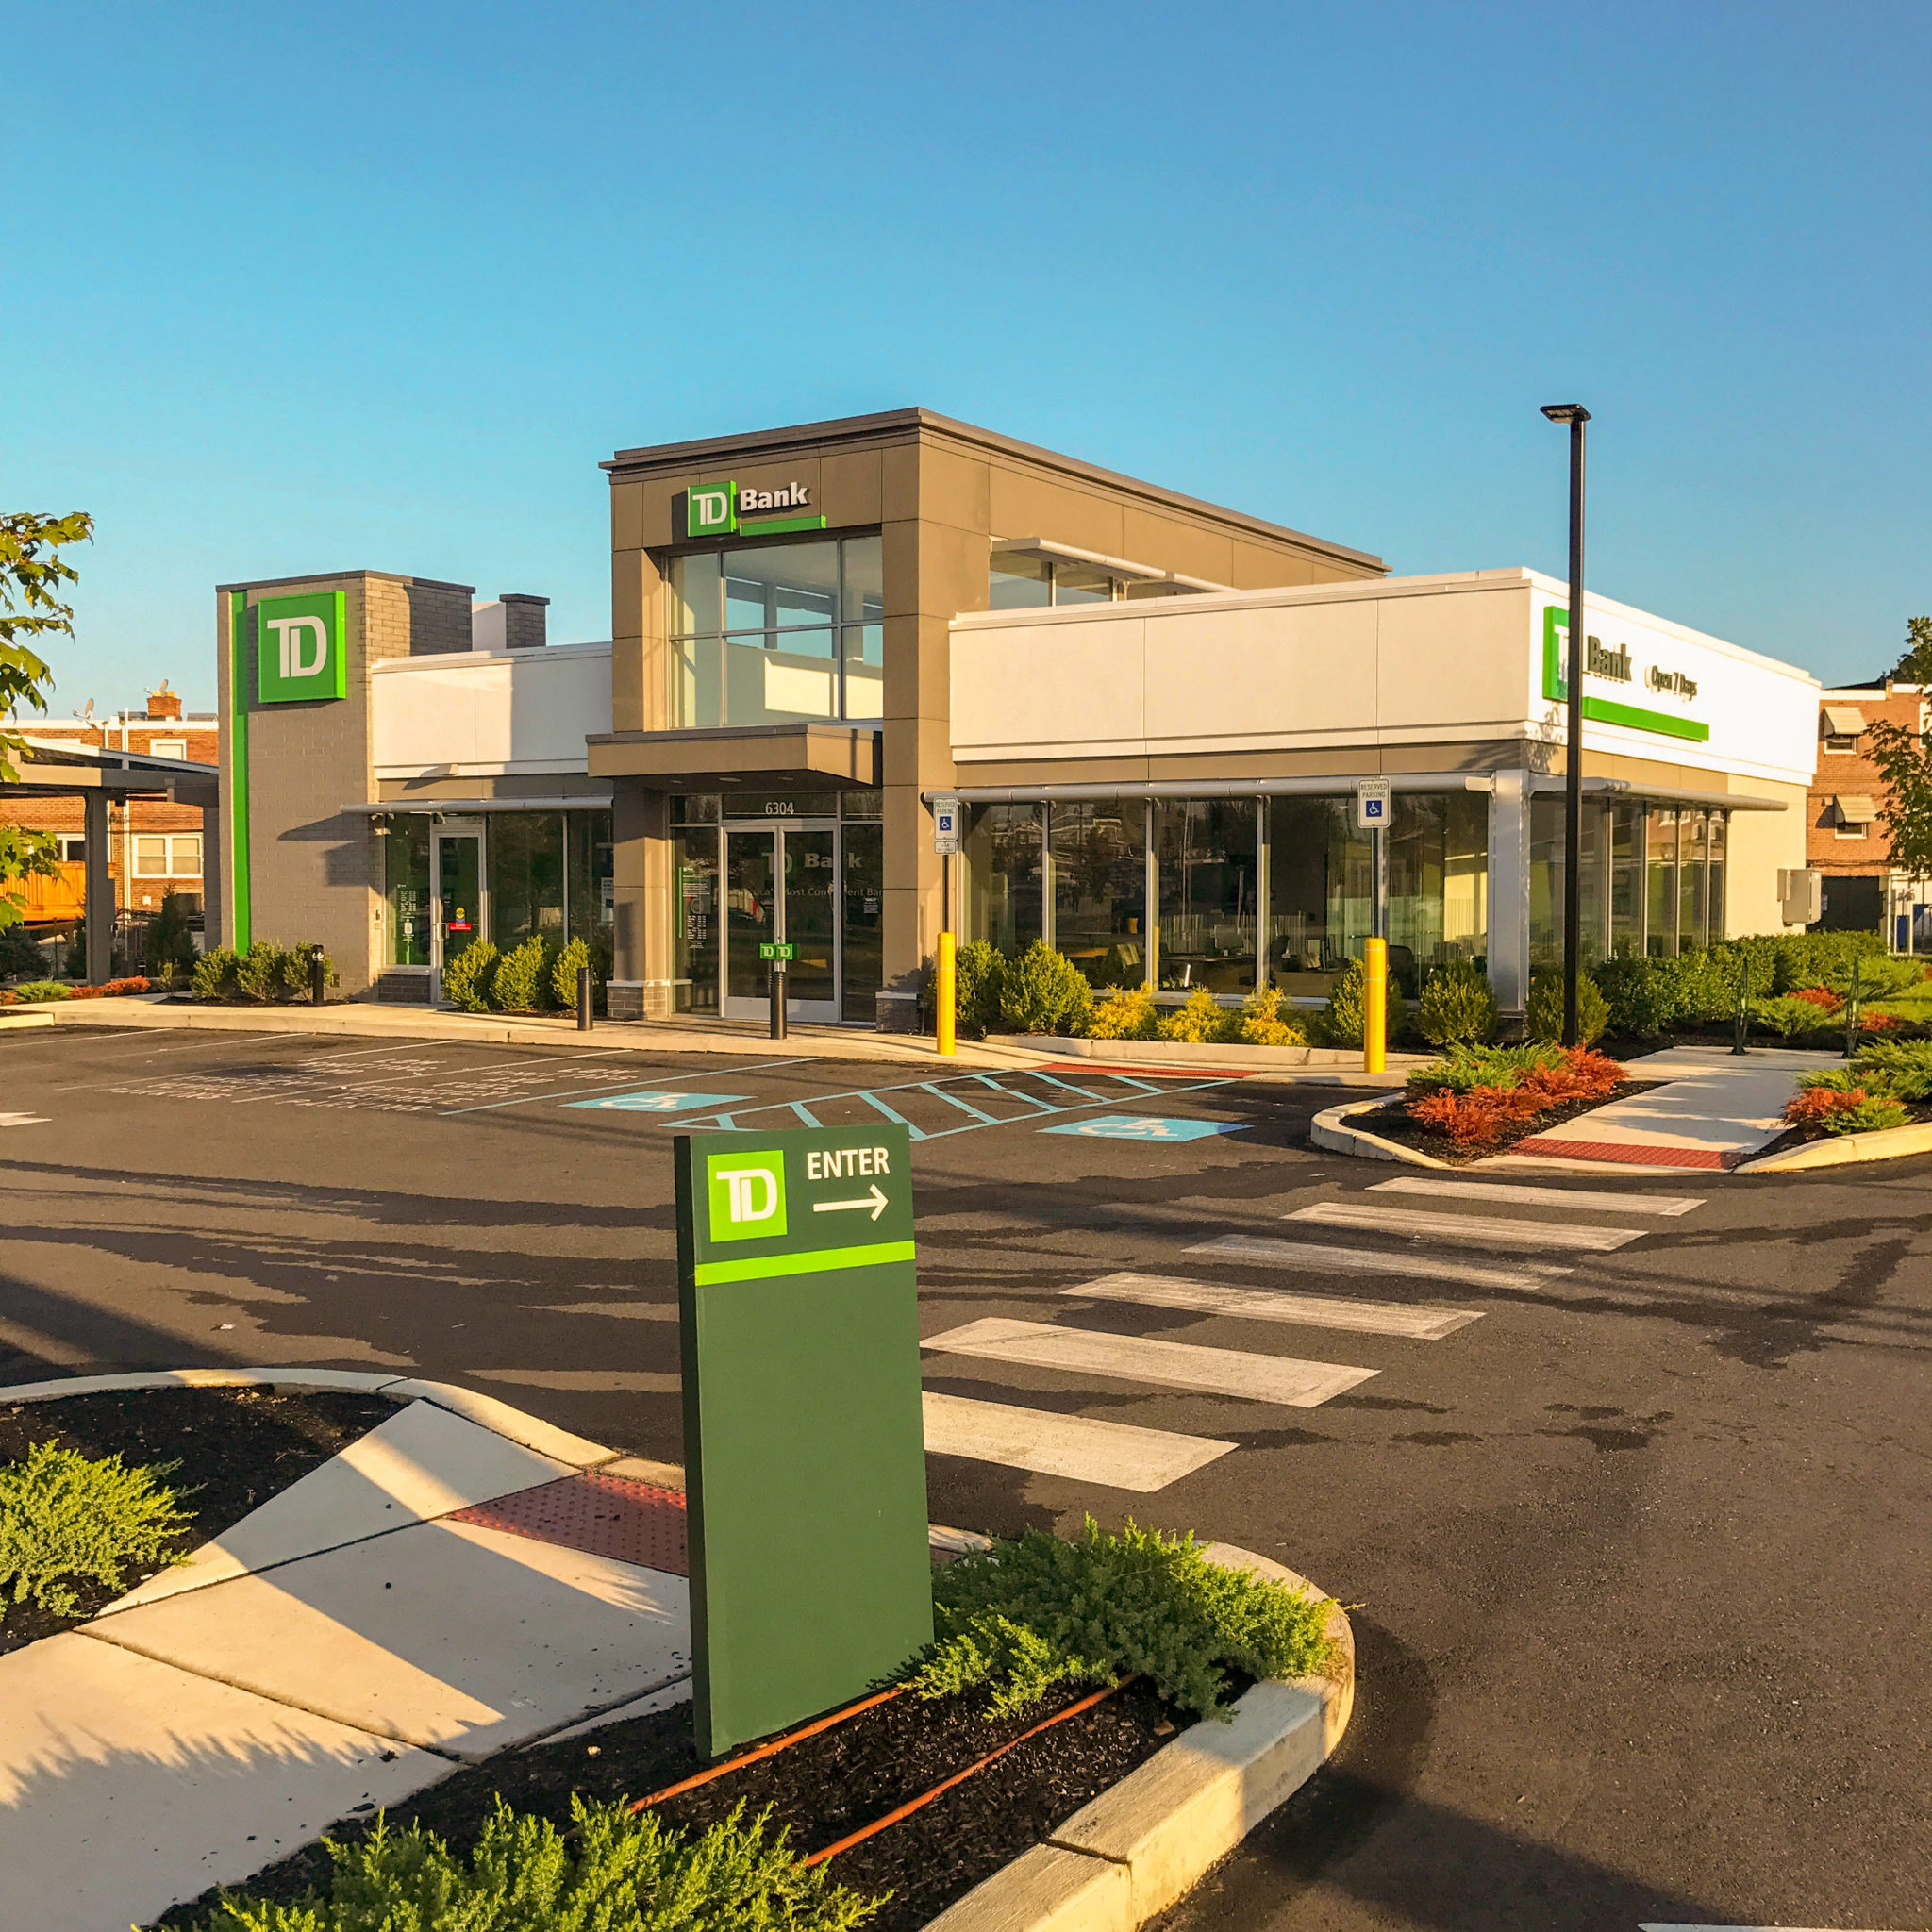 td bank locations in new jersey